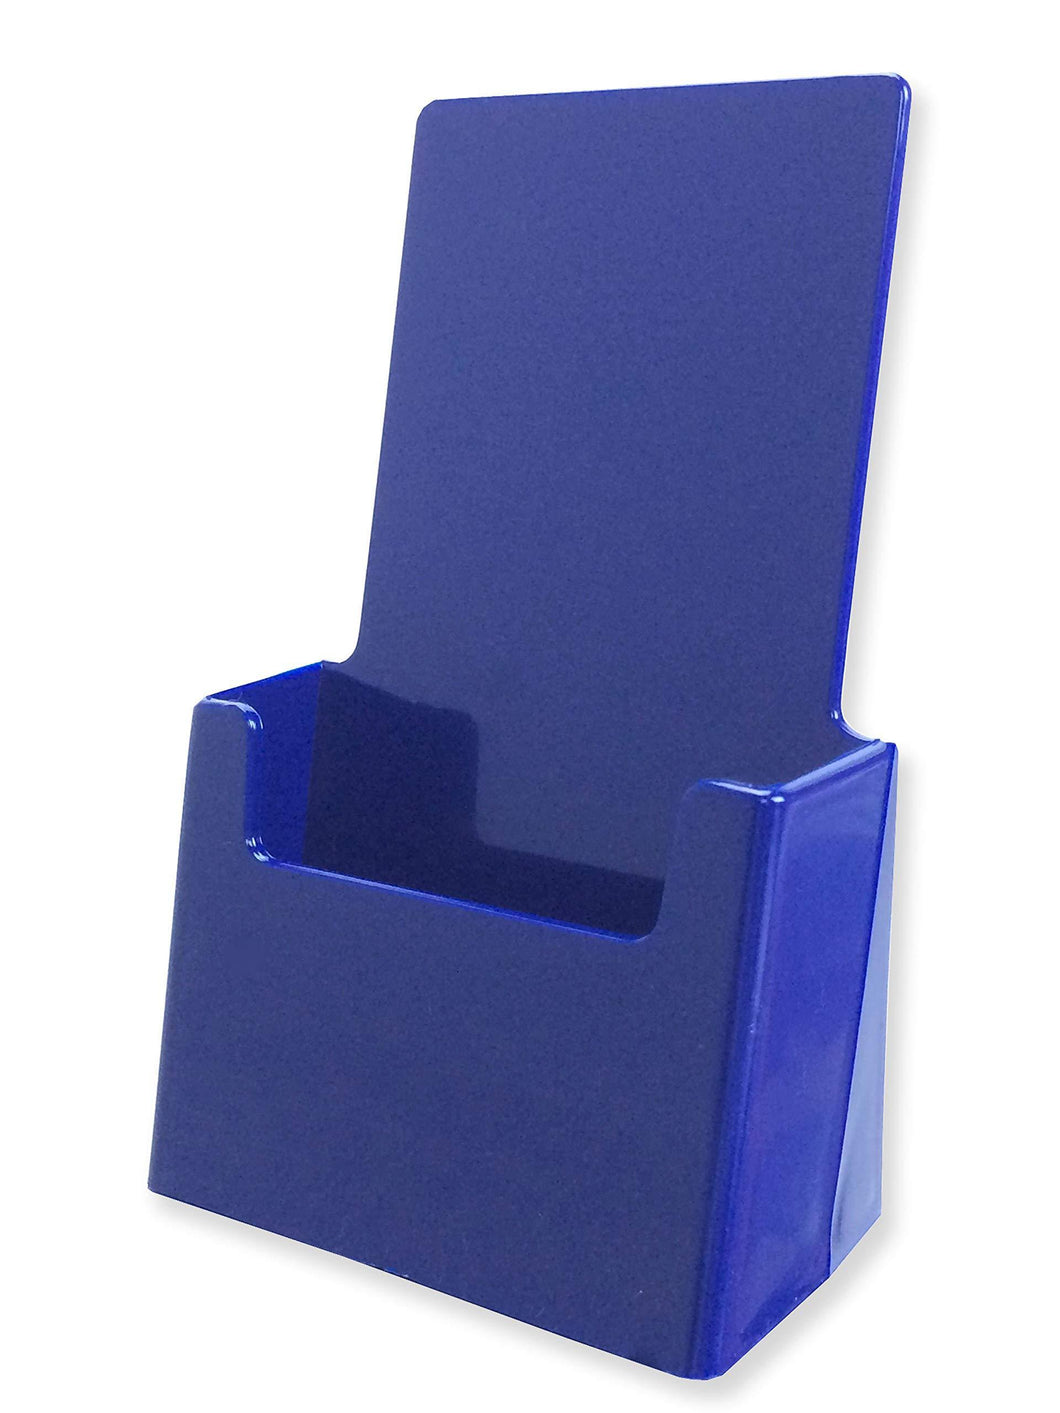 Shop for marketing holders blue brochure pamphlet holder advertisement literature display printed material paper rack countertop 4w x 7h pack of 25